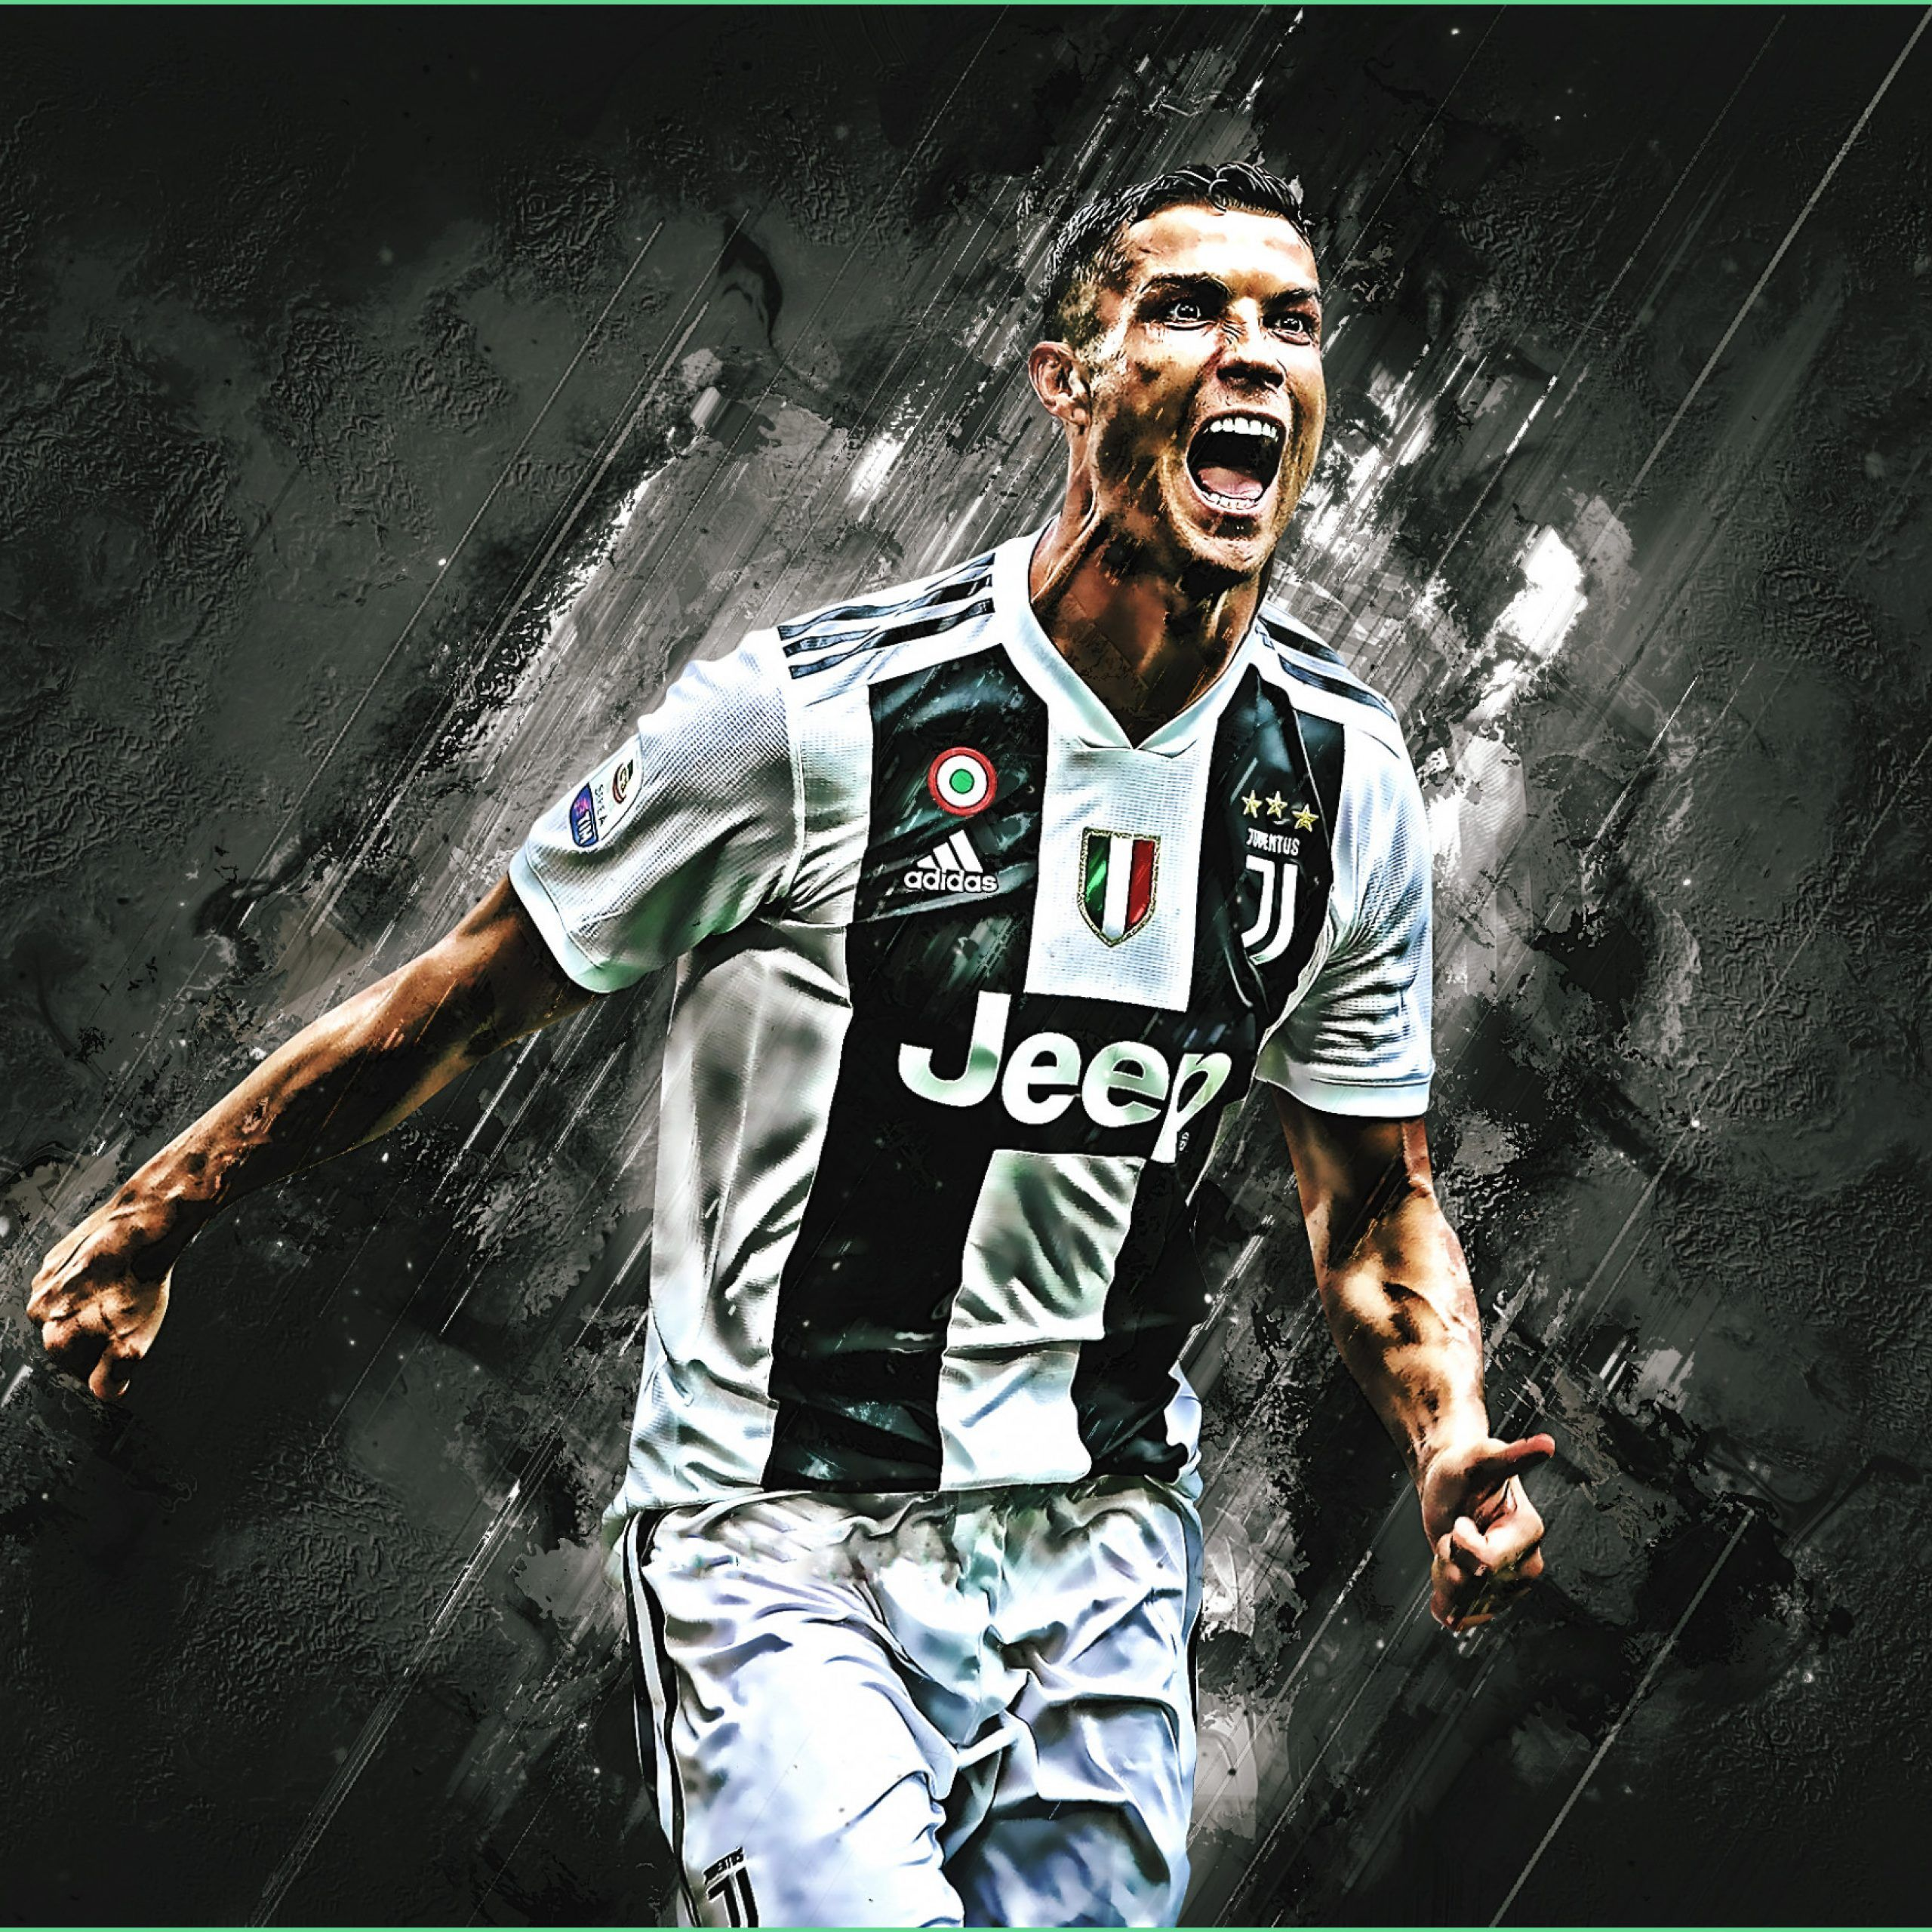 Heres What Industry Insiders Say About Soccer Wallpaper Ronaldo Soccer Wallpaper Ronaldo Https Soccerdraw Ronaldo Ronaldo Football Player Cristiano Ronaldo